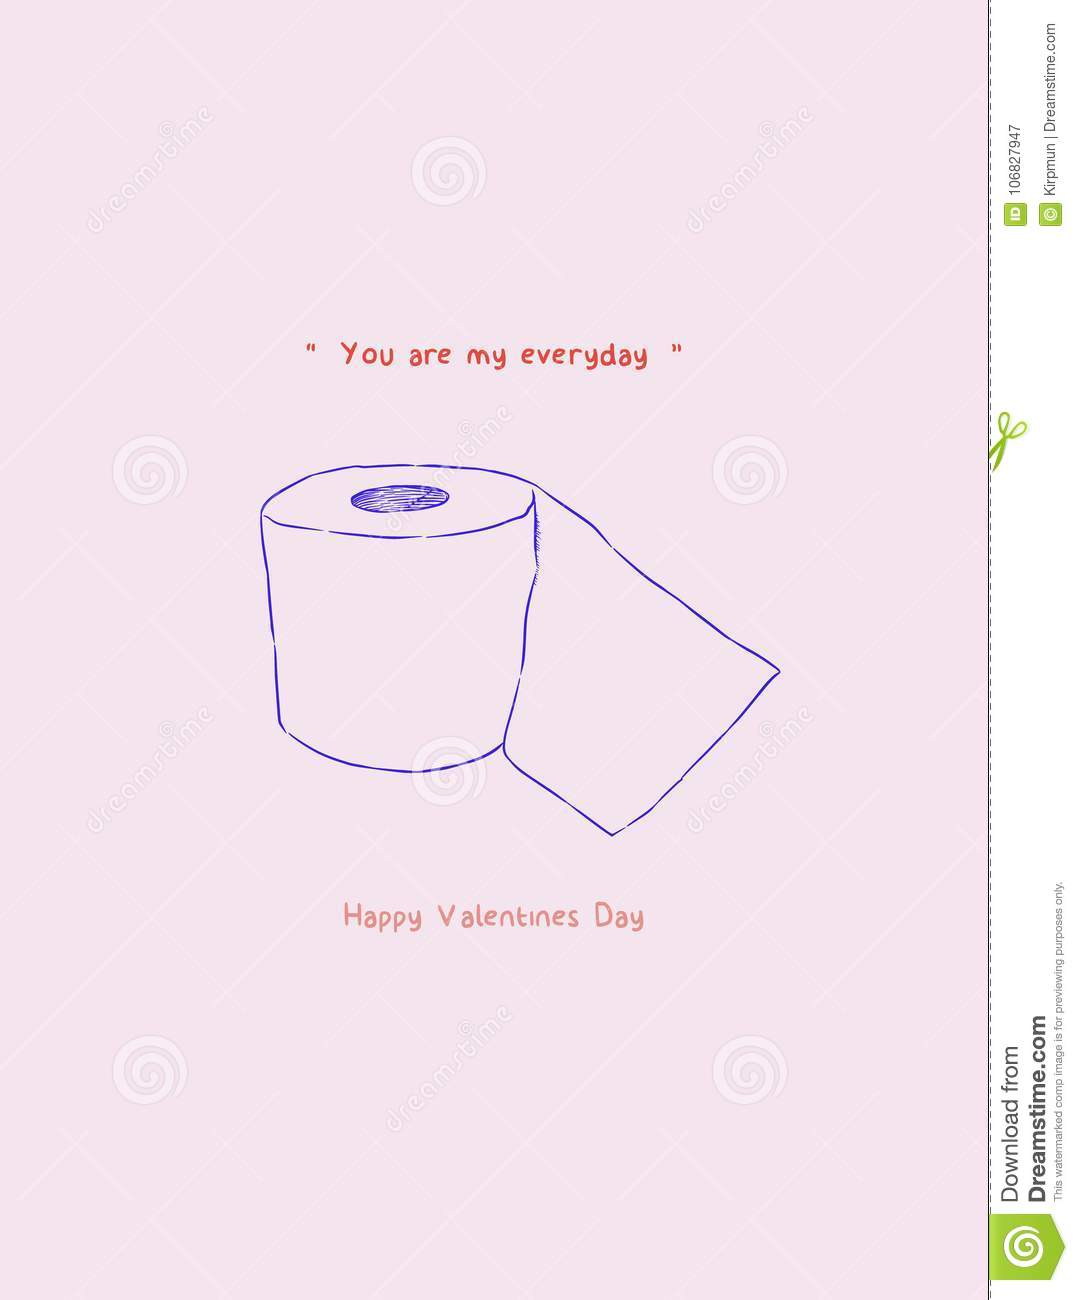 Happy Valentines Day Gift Card You Are My Every Day Concept Stock